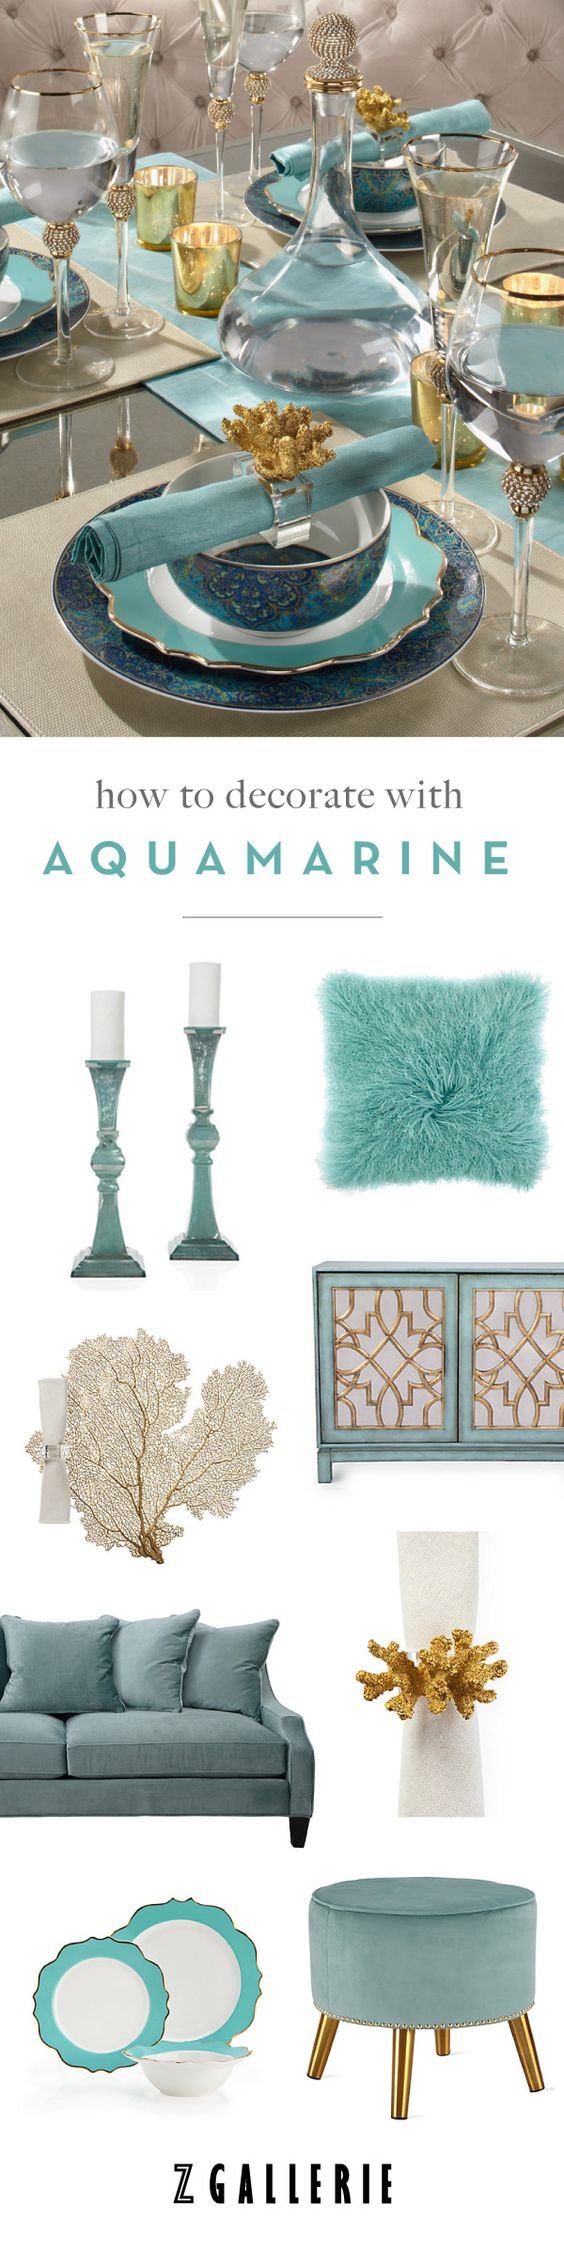 Get easy ideas for infusing aquamarine in your space this summer. Explore our Fashionista's Guide to Home Color on zgallerie.com!: